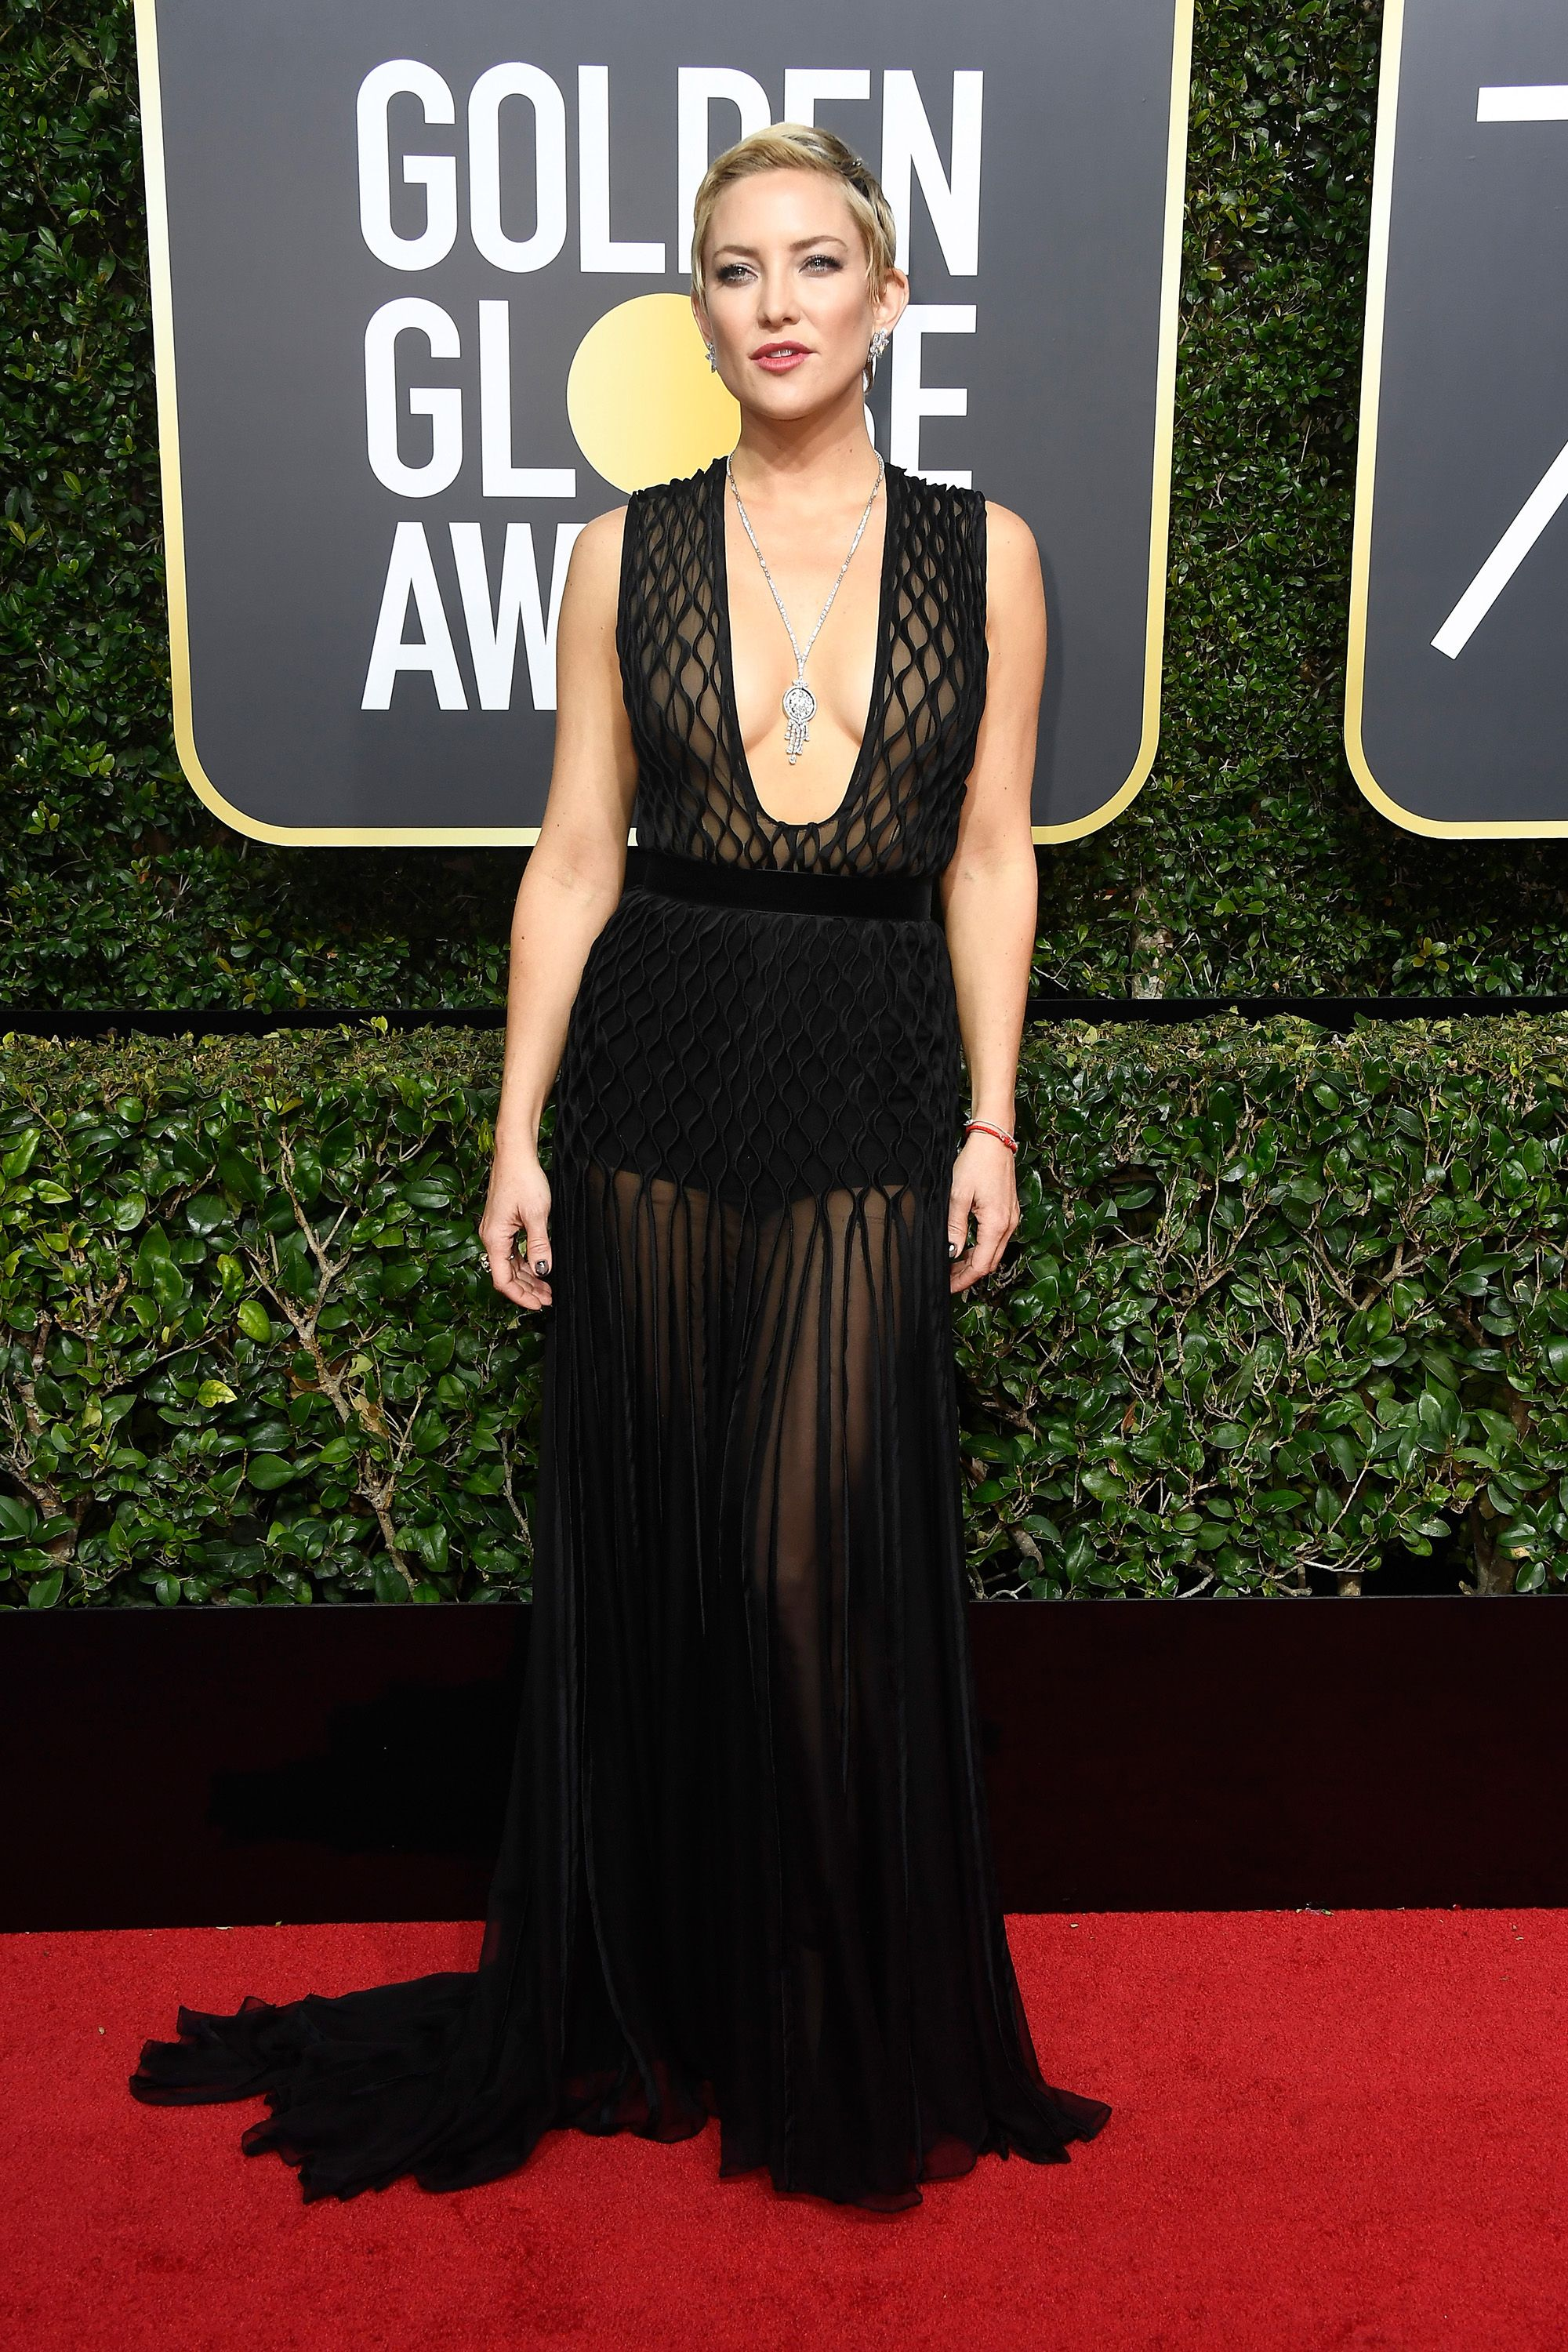 Golden globes fashions red carpet